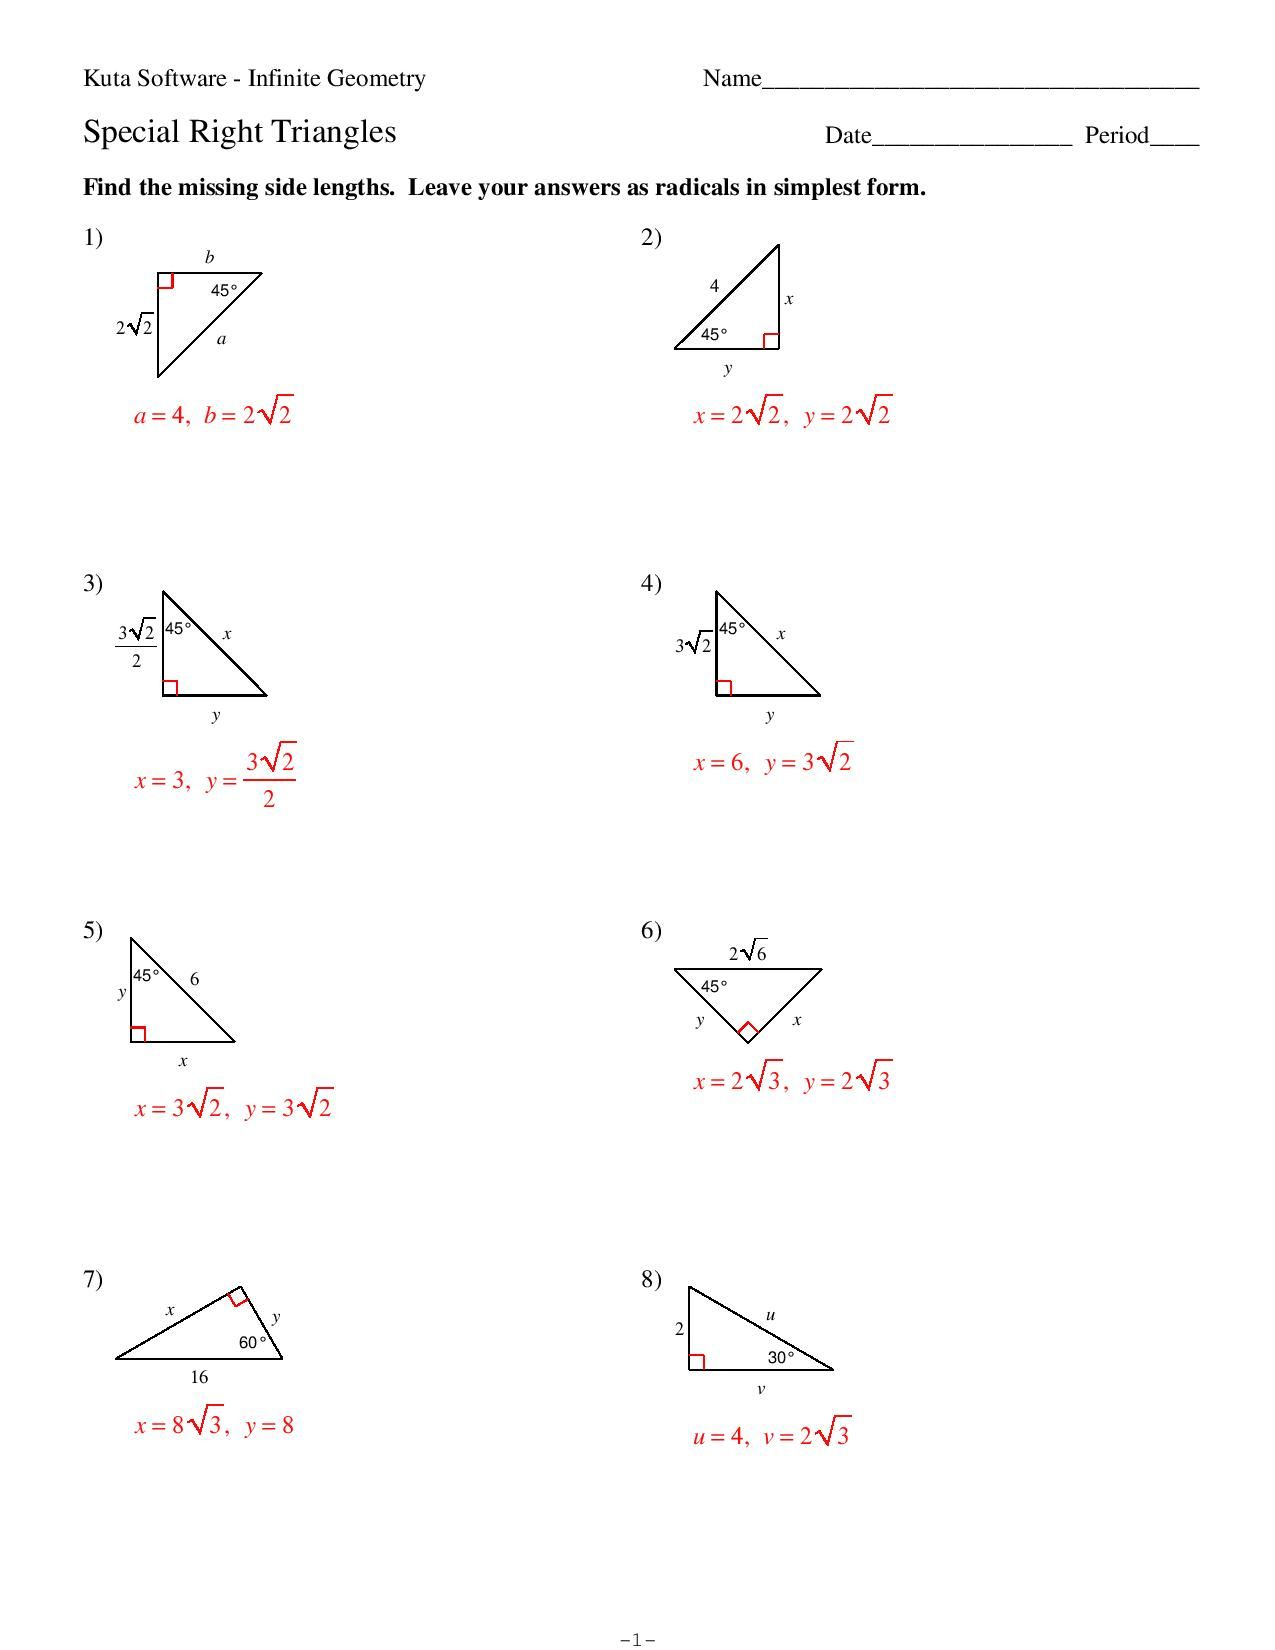 Special Right Triangles Worksheet Answers Key